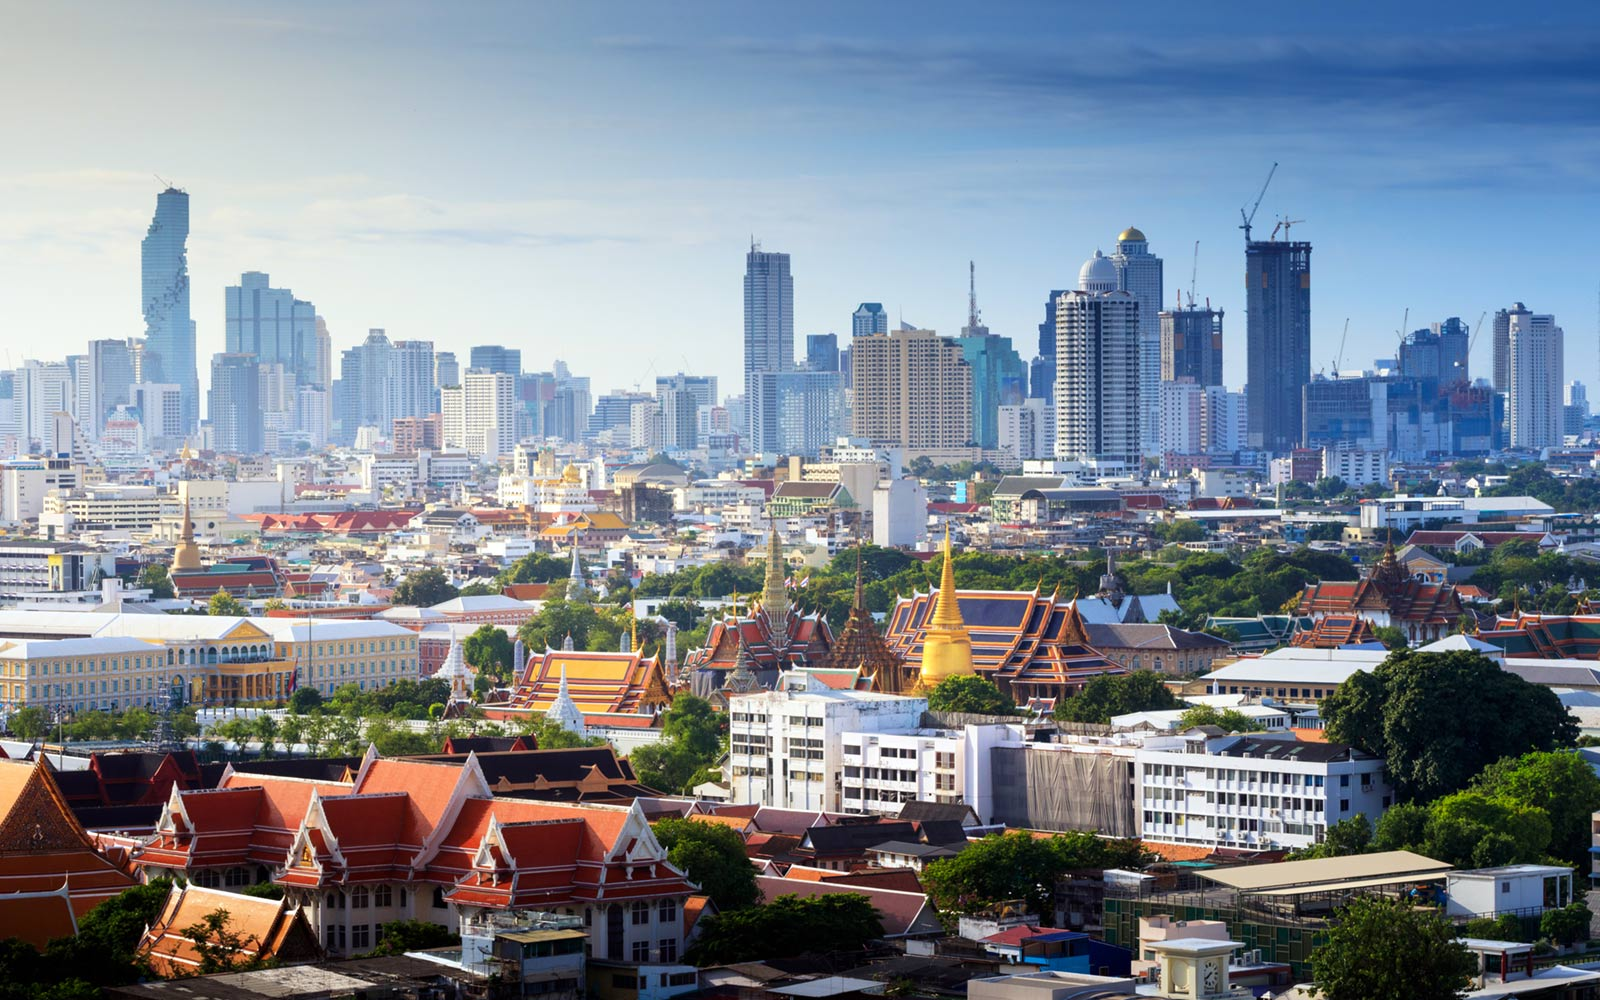 Skyline of Bangkok, Thailand